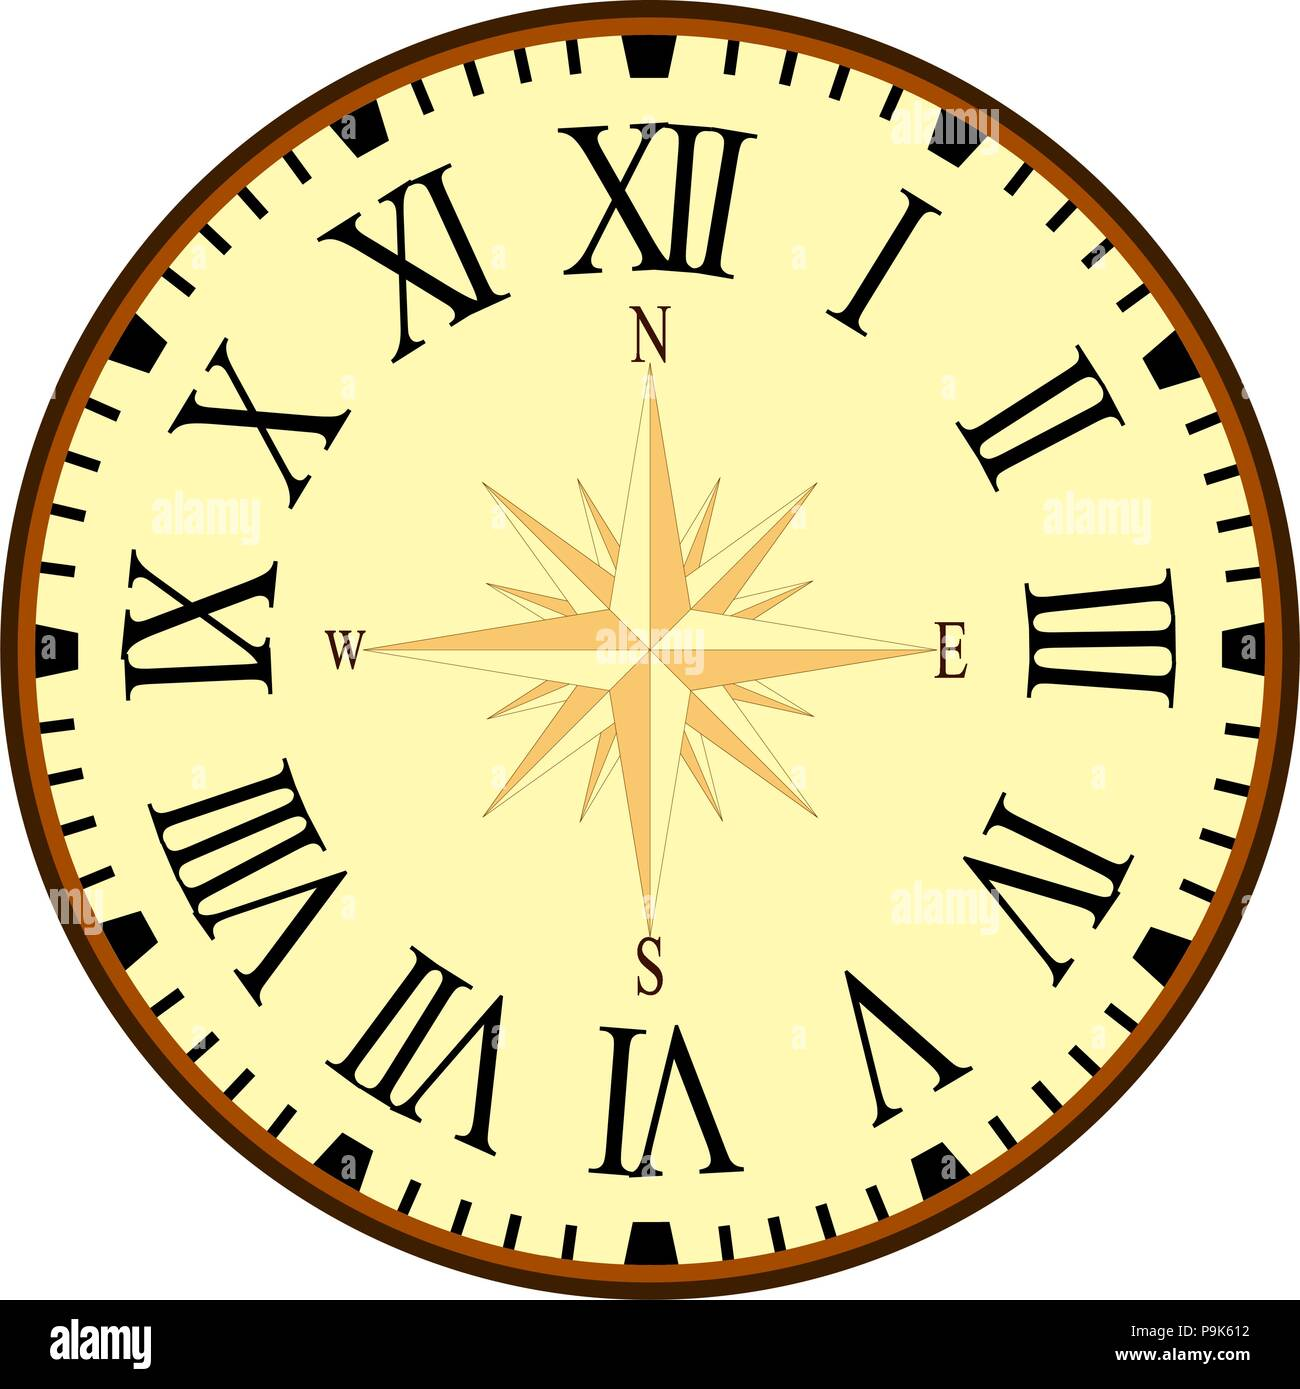 Vintage Clock Vector Graphic With Compass On The Clockface